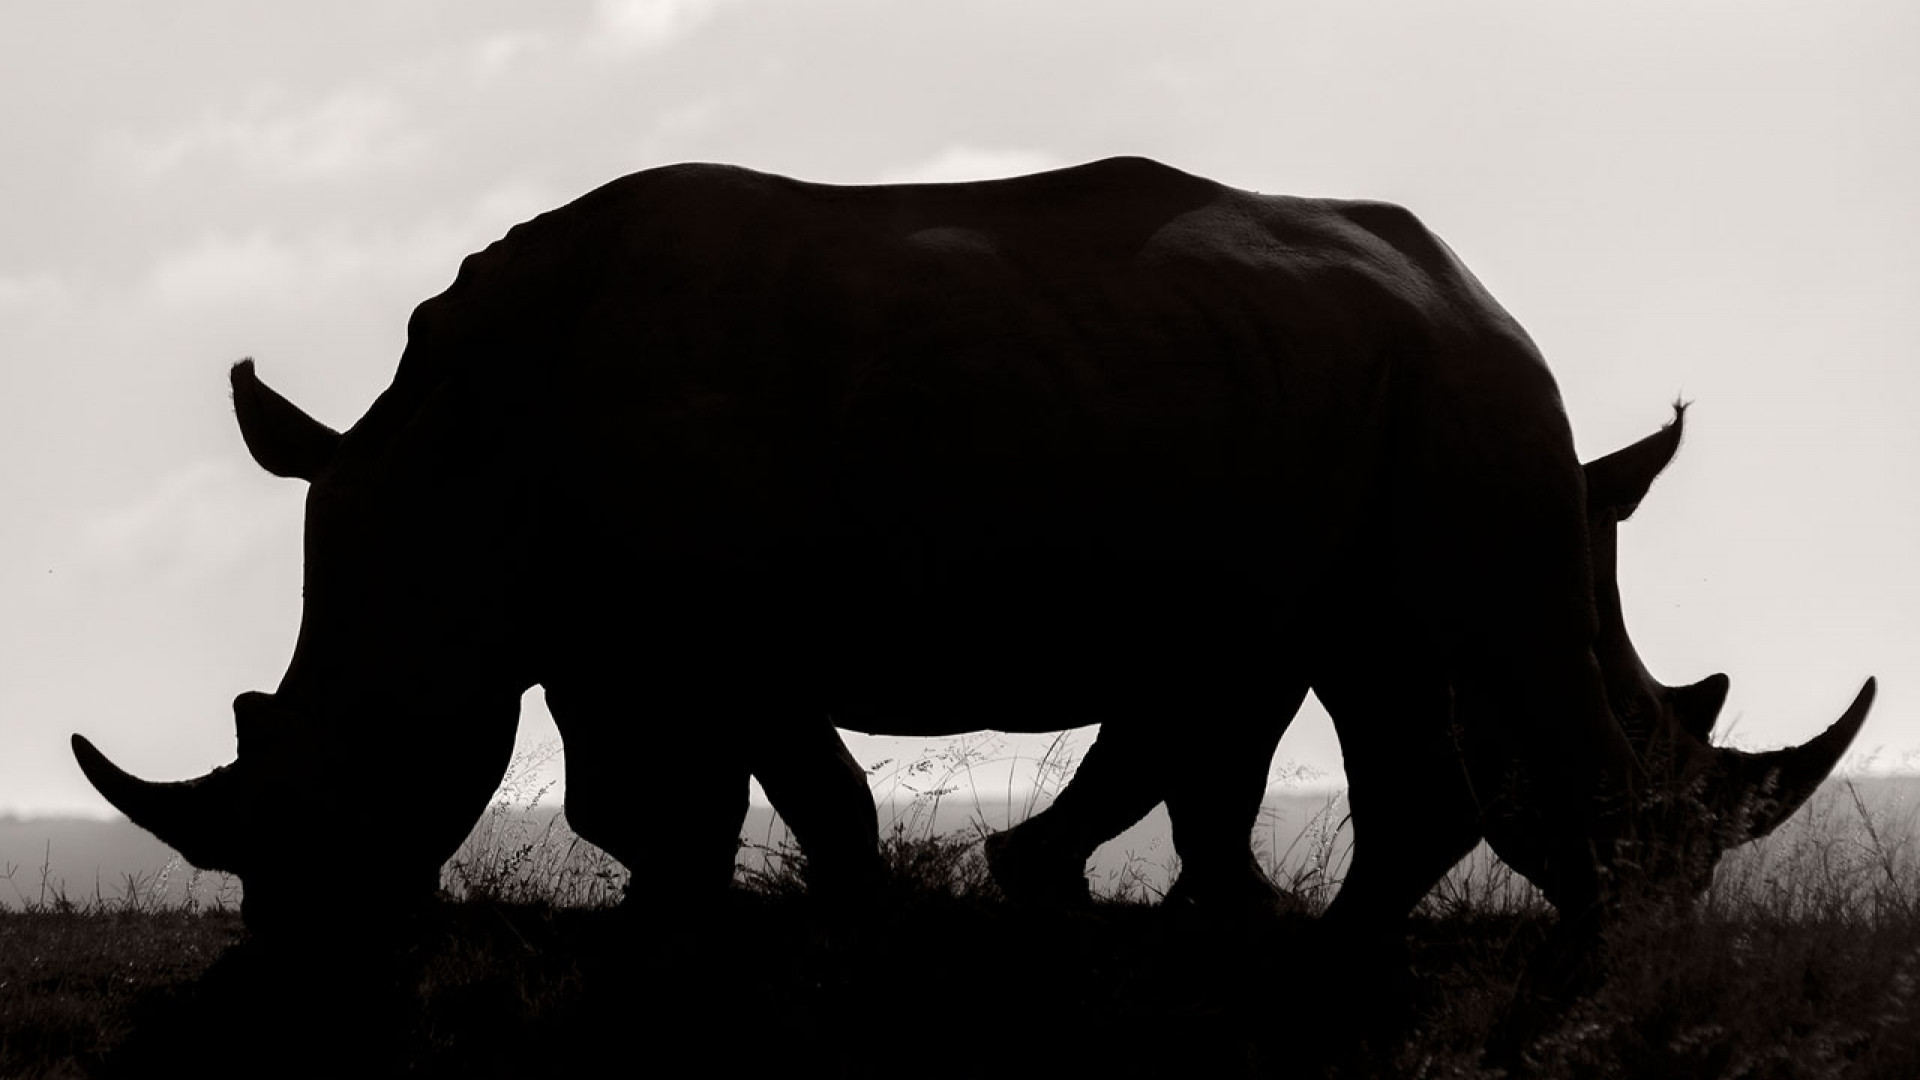 The silhouette of two White rhinoceroses blending to create the illusion of one